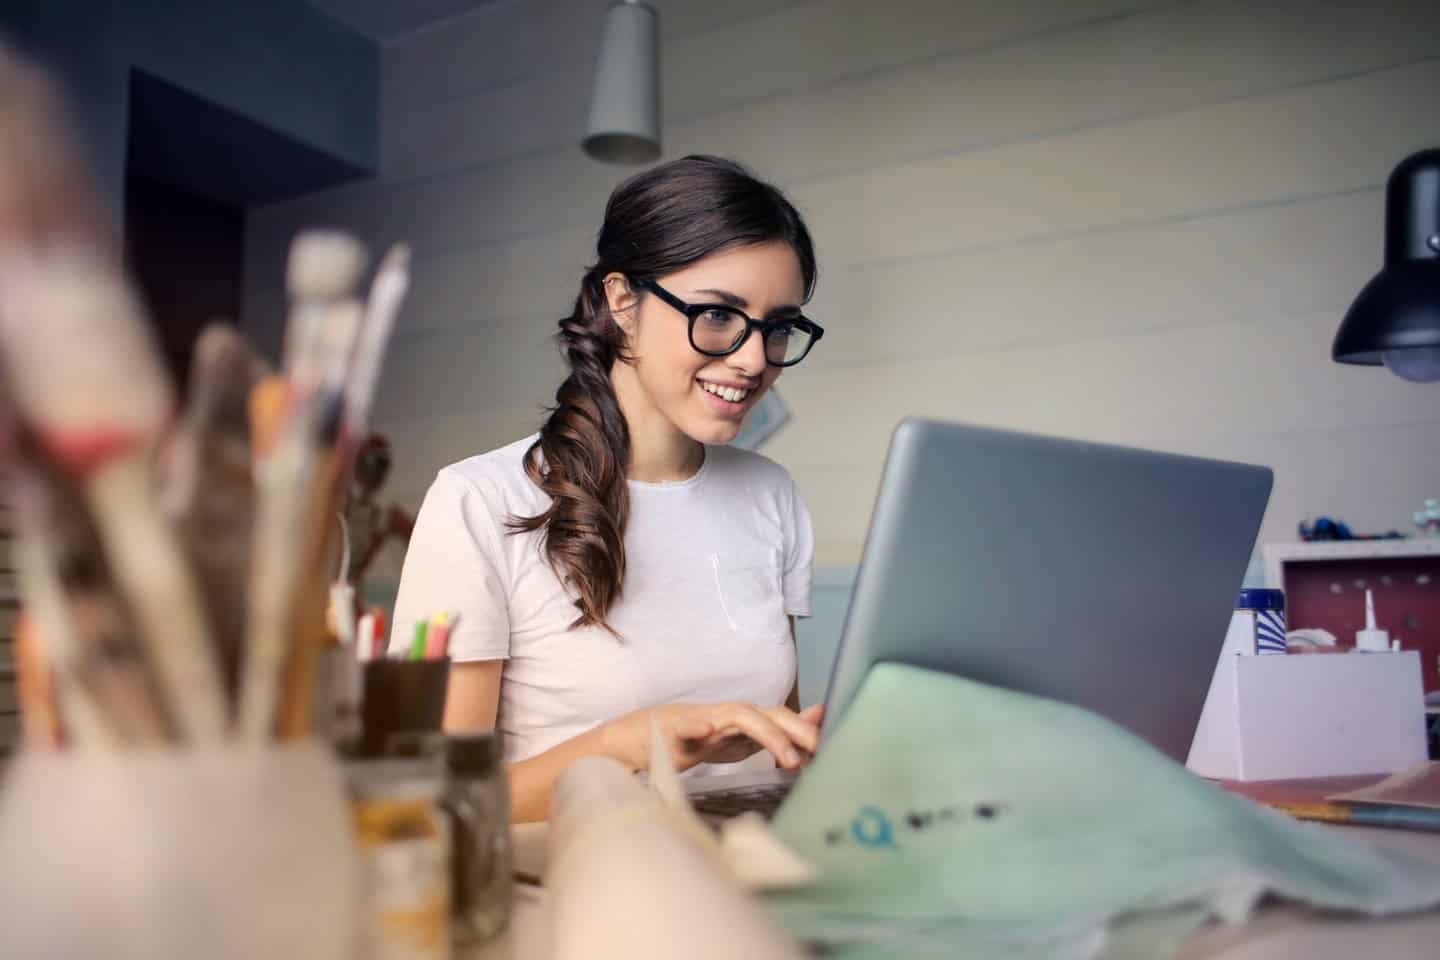 Woman on Laptop Working Freelance Jobs from Home